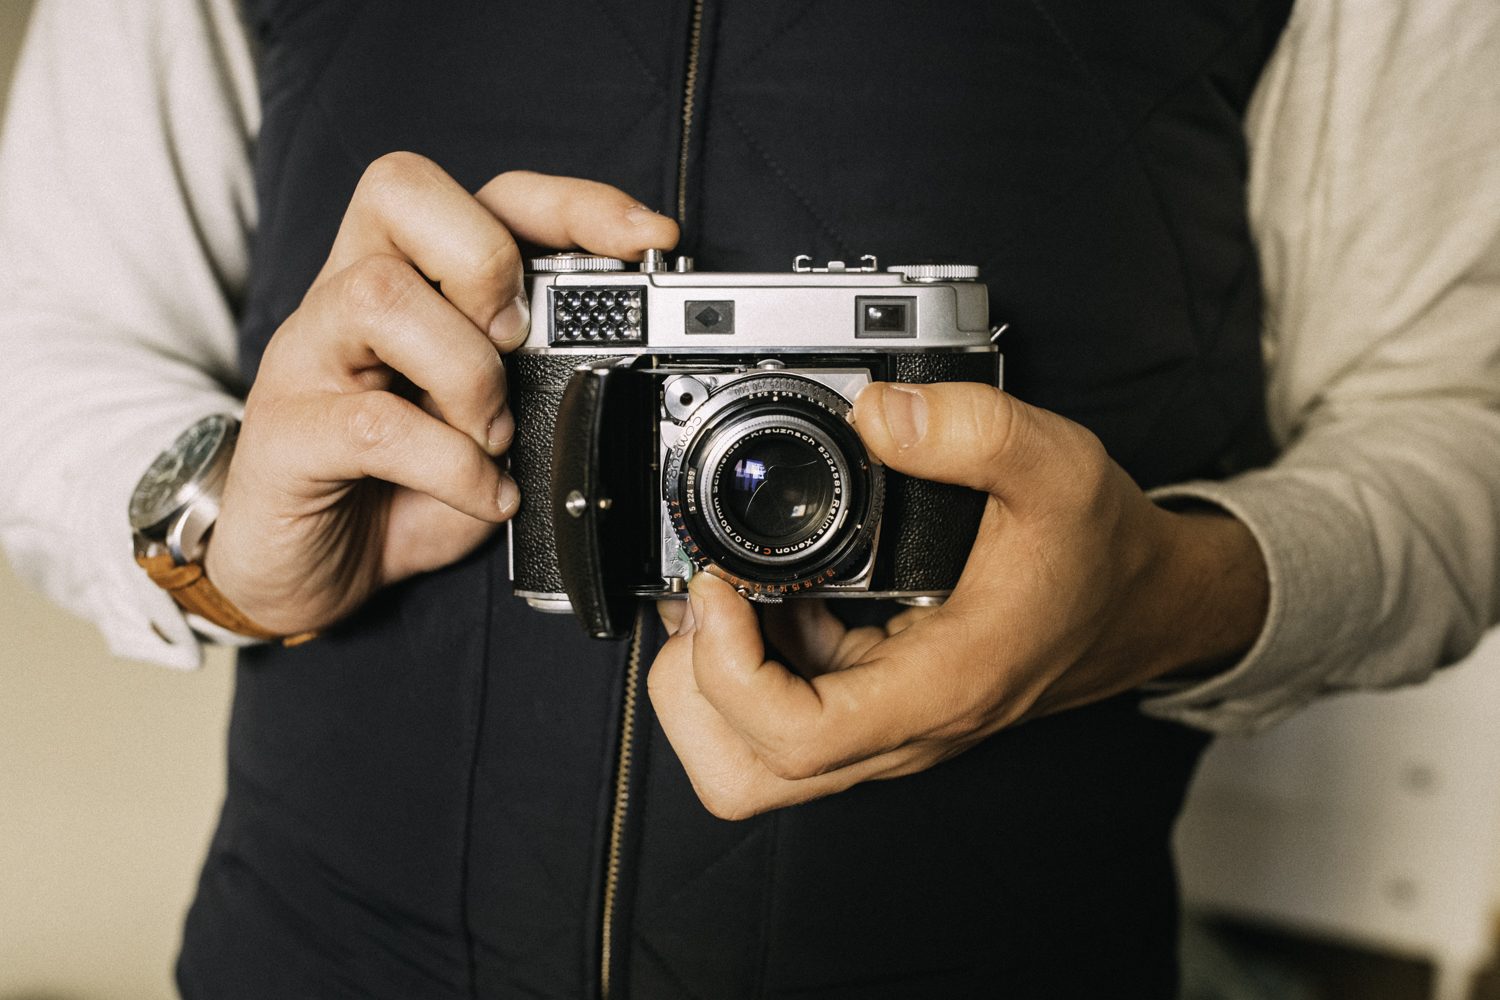 Here's how it looks in my hands. Absolutely one of my favorite cameras. So classic, so well made, and such a fabulous picture-taker.